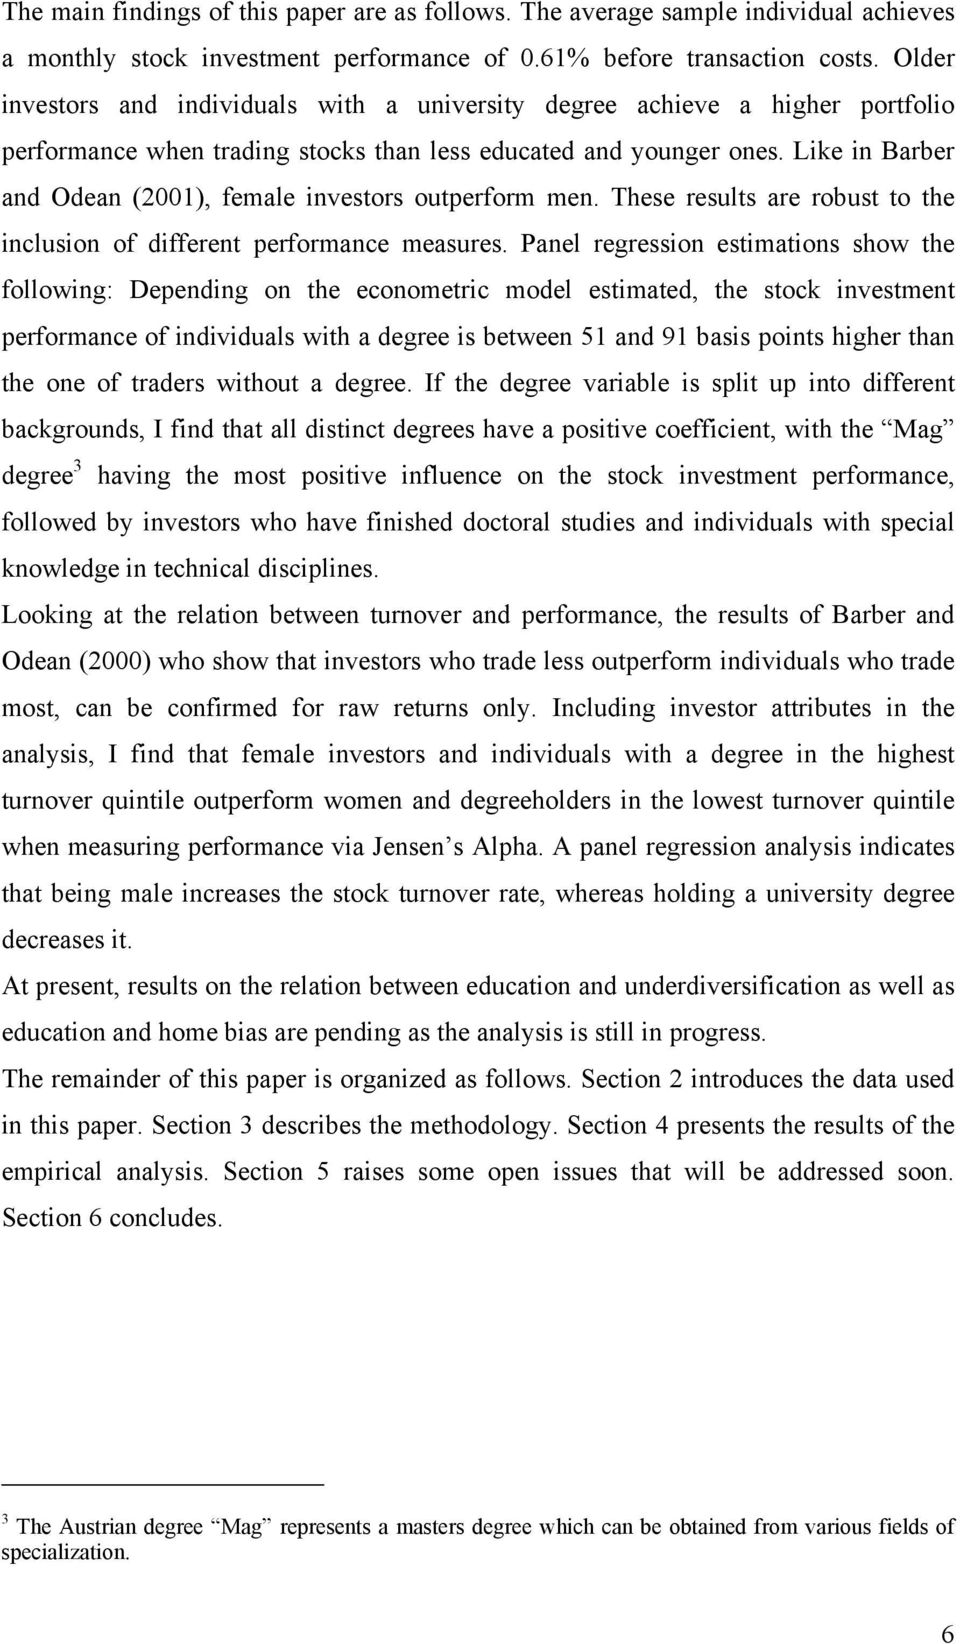 Like in Barber and Odean (2001), female investors outperform men. These results are robust to the inclusion of different performance measures.